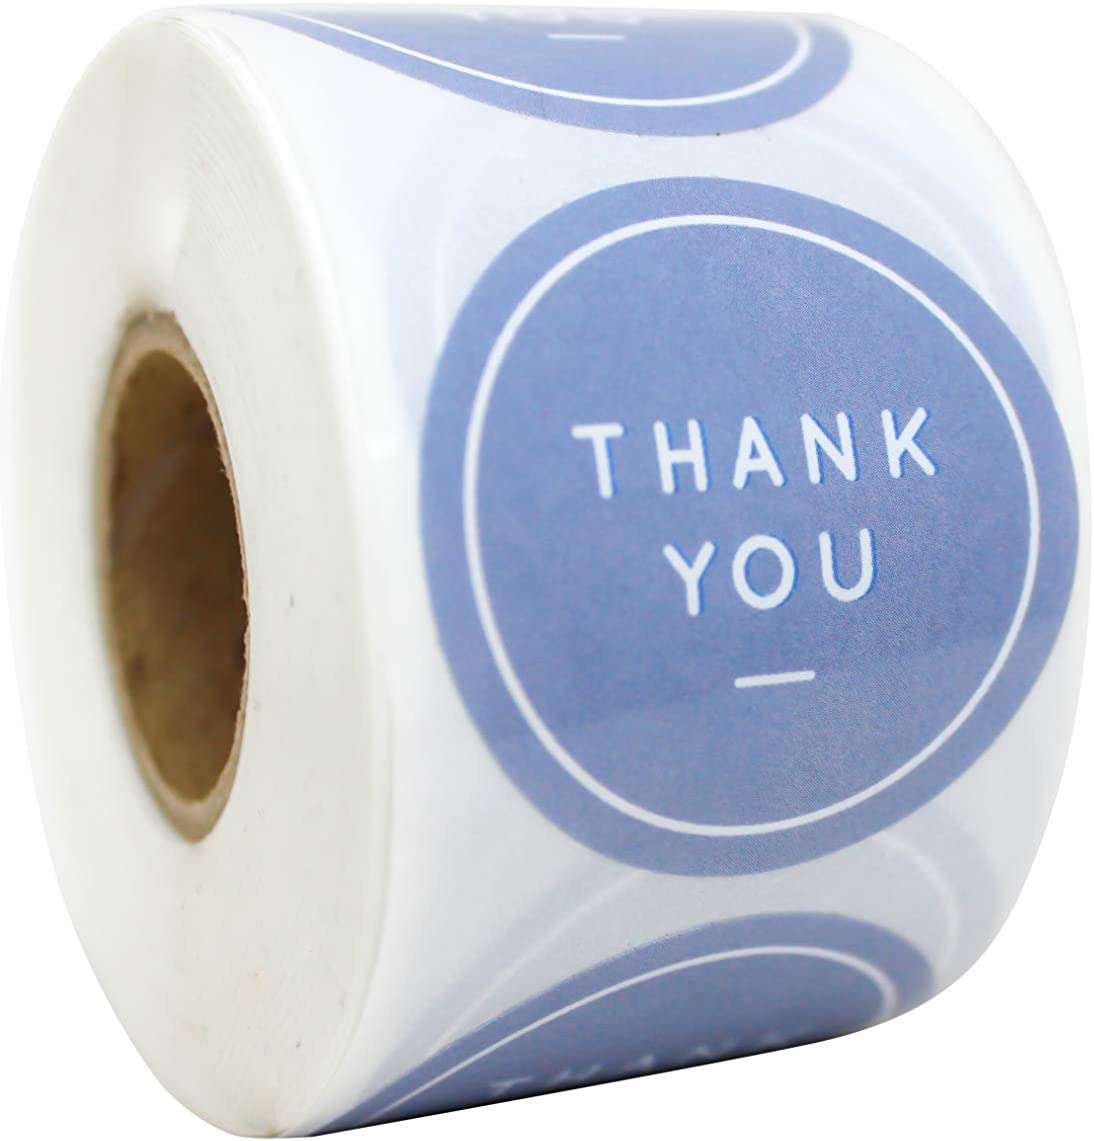 Amazon Com Paperlily Thank You Stickers 1 5 500 Grey Gray Labels Per Roll Office Products